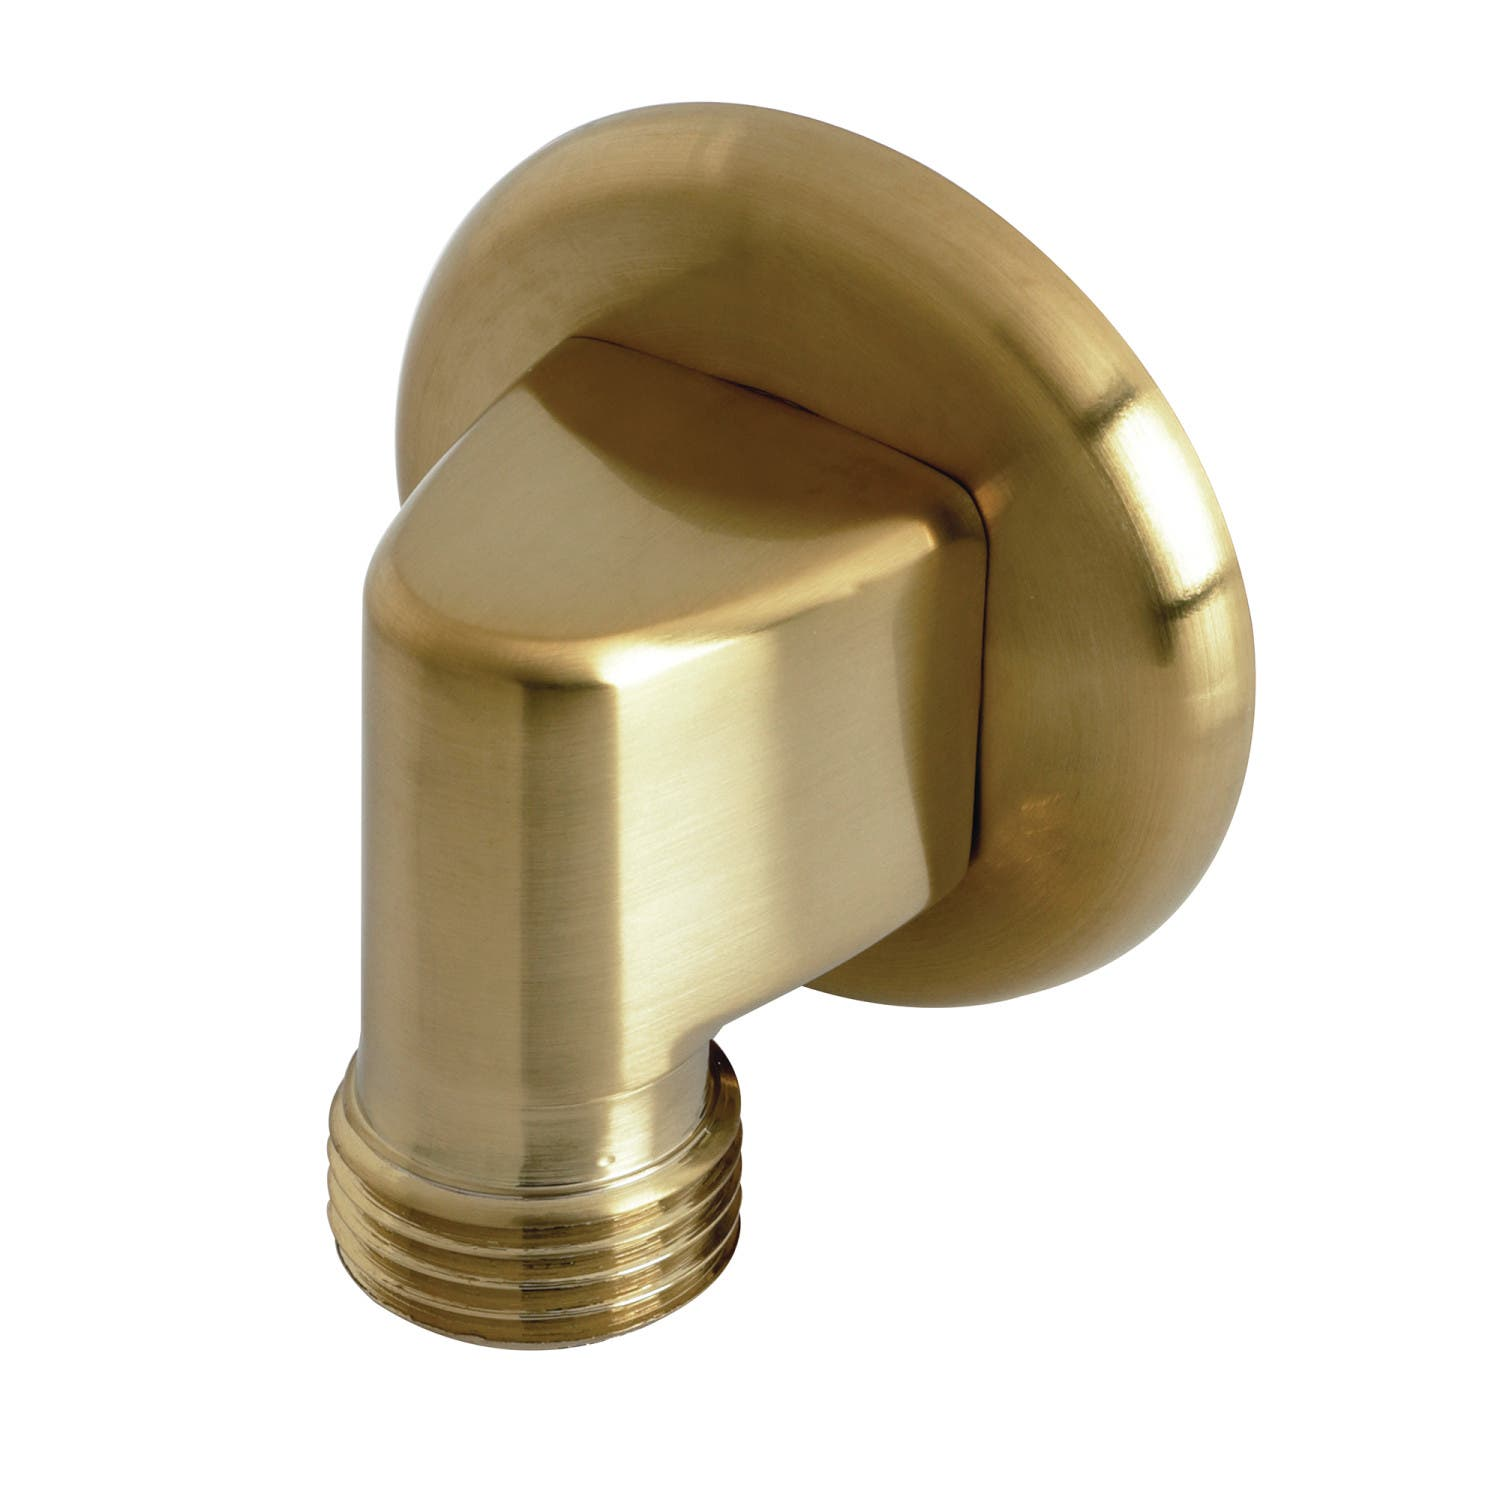 Kingston Brass K173A7 Wall Mount Water Supply Elbow, Brushed Brass